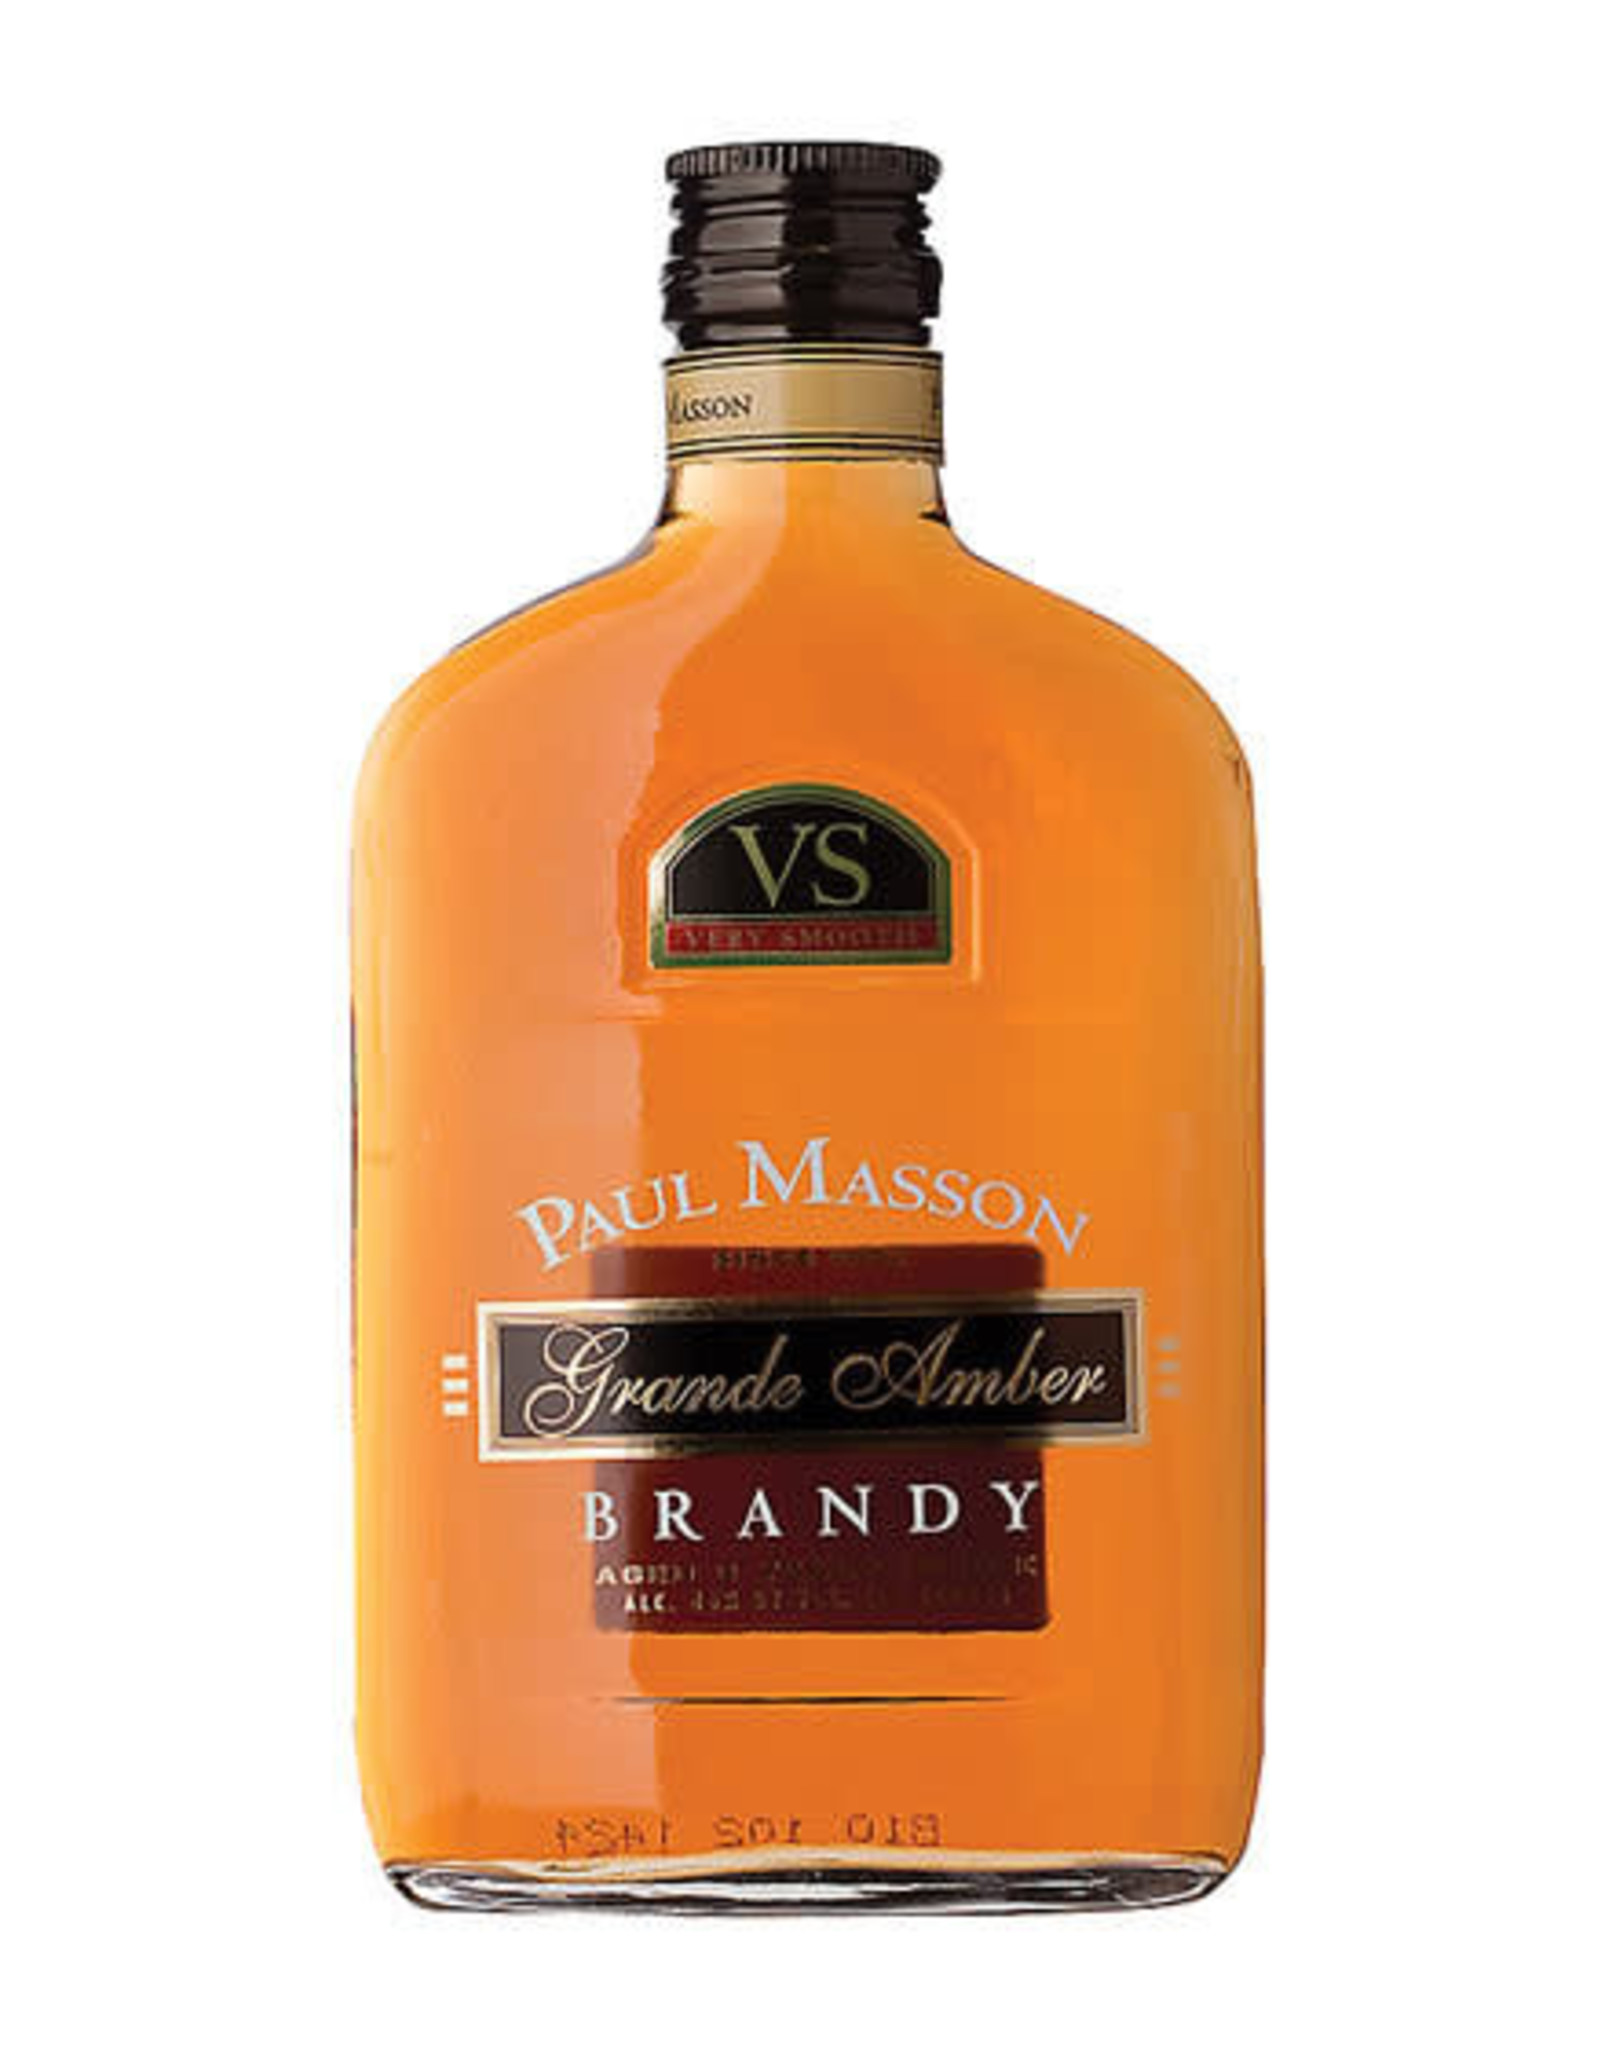 PAUL MASSON VS BRANDY 375ML